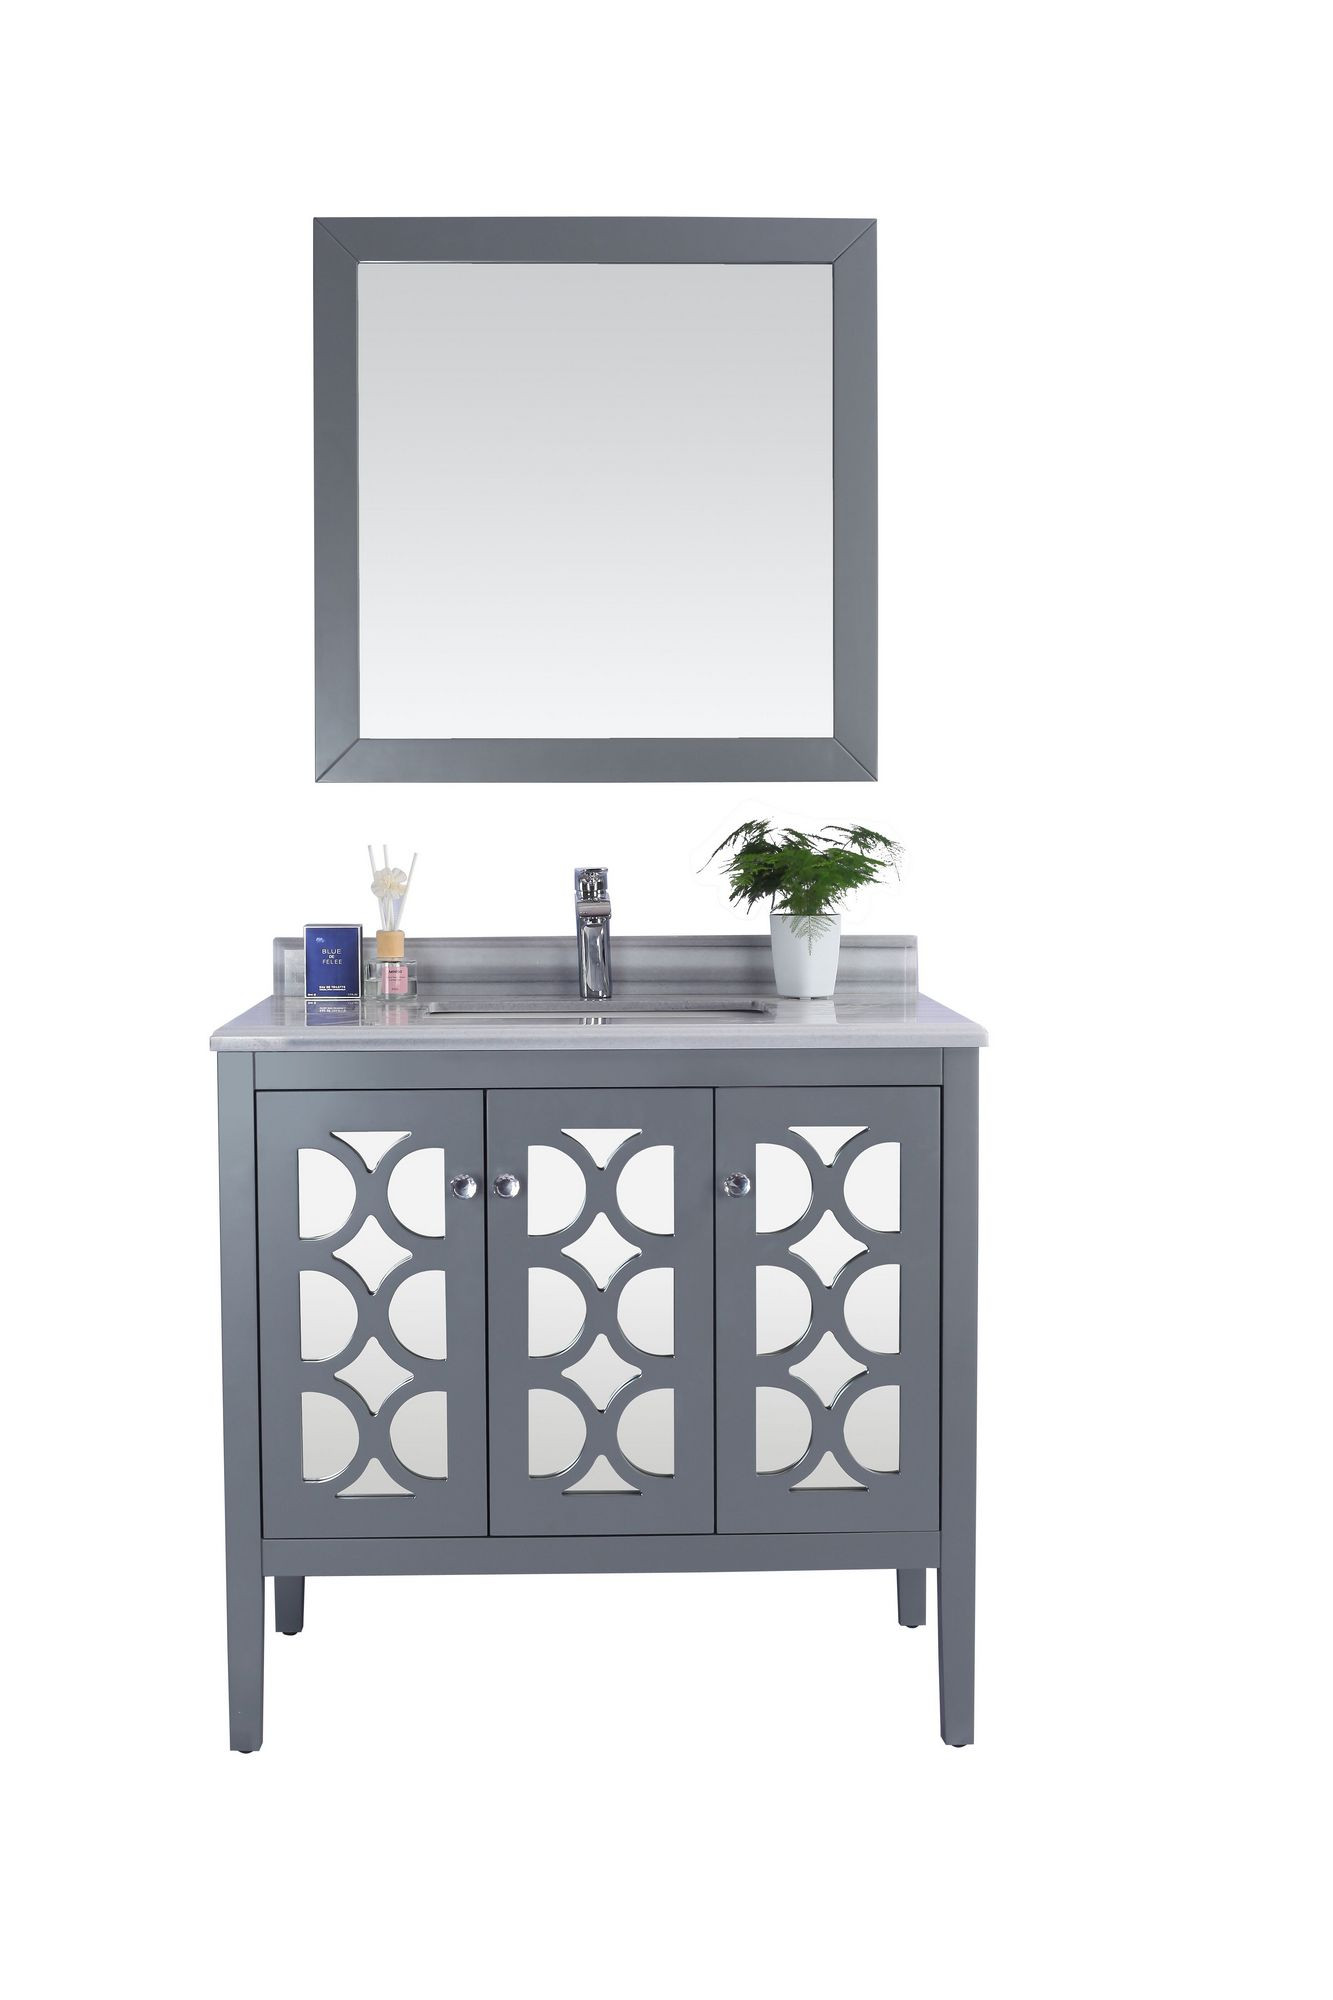 Laviva 313MKSH-36-WS Mediterraneo 36 Inch Vanity With White Stripes Counter